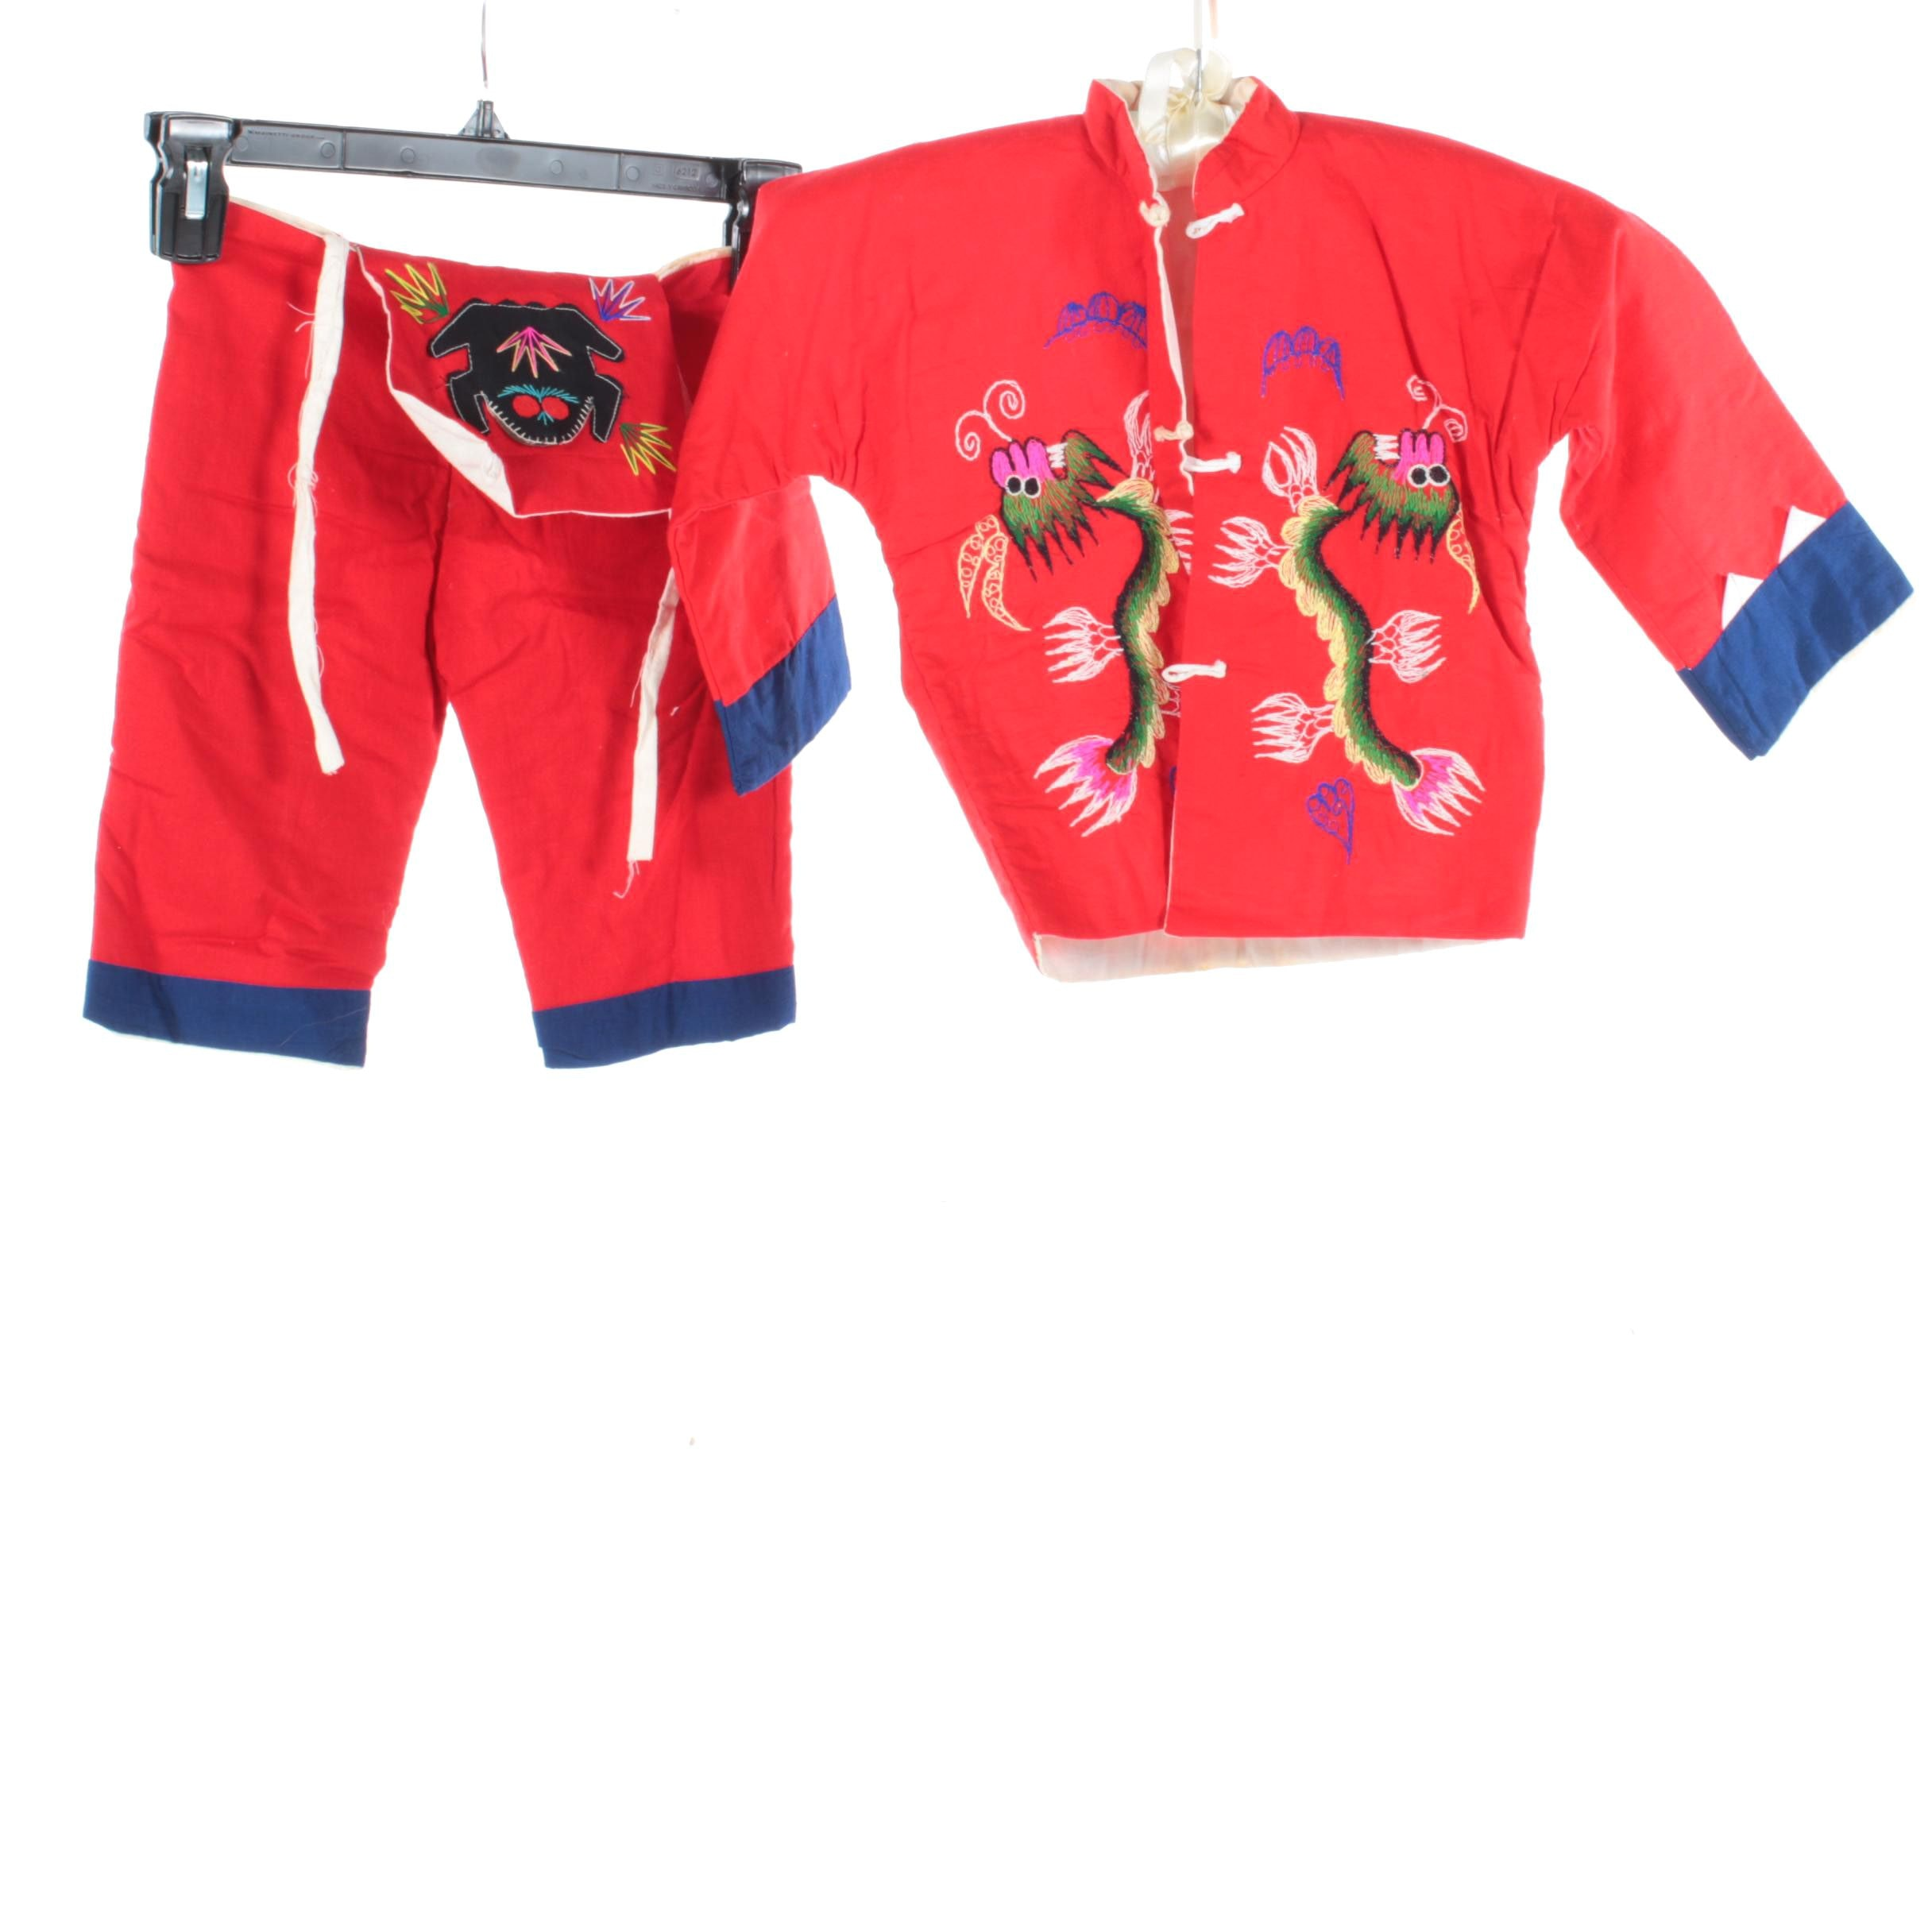 Children's Vintage Chinese Overalls and Jacket